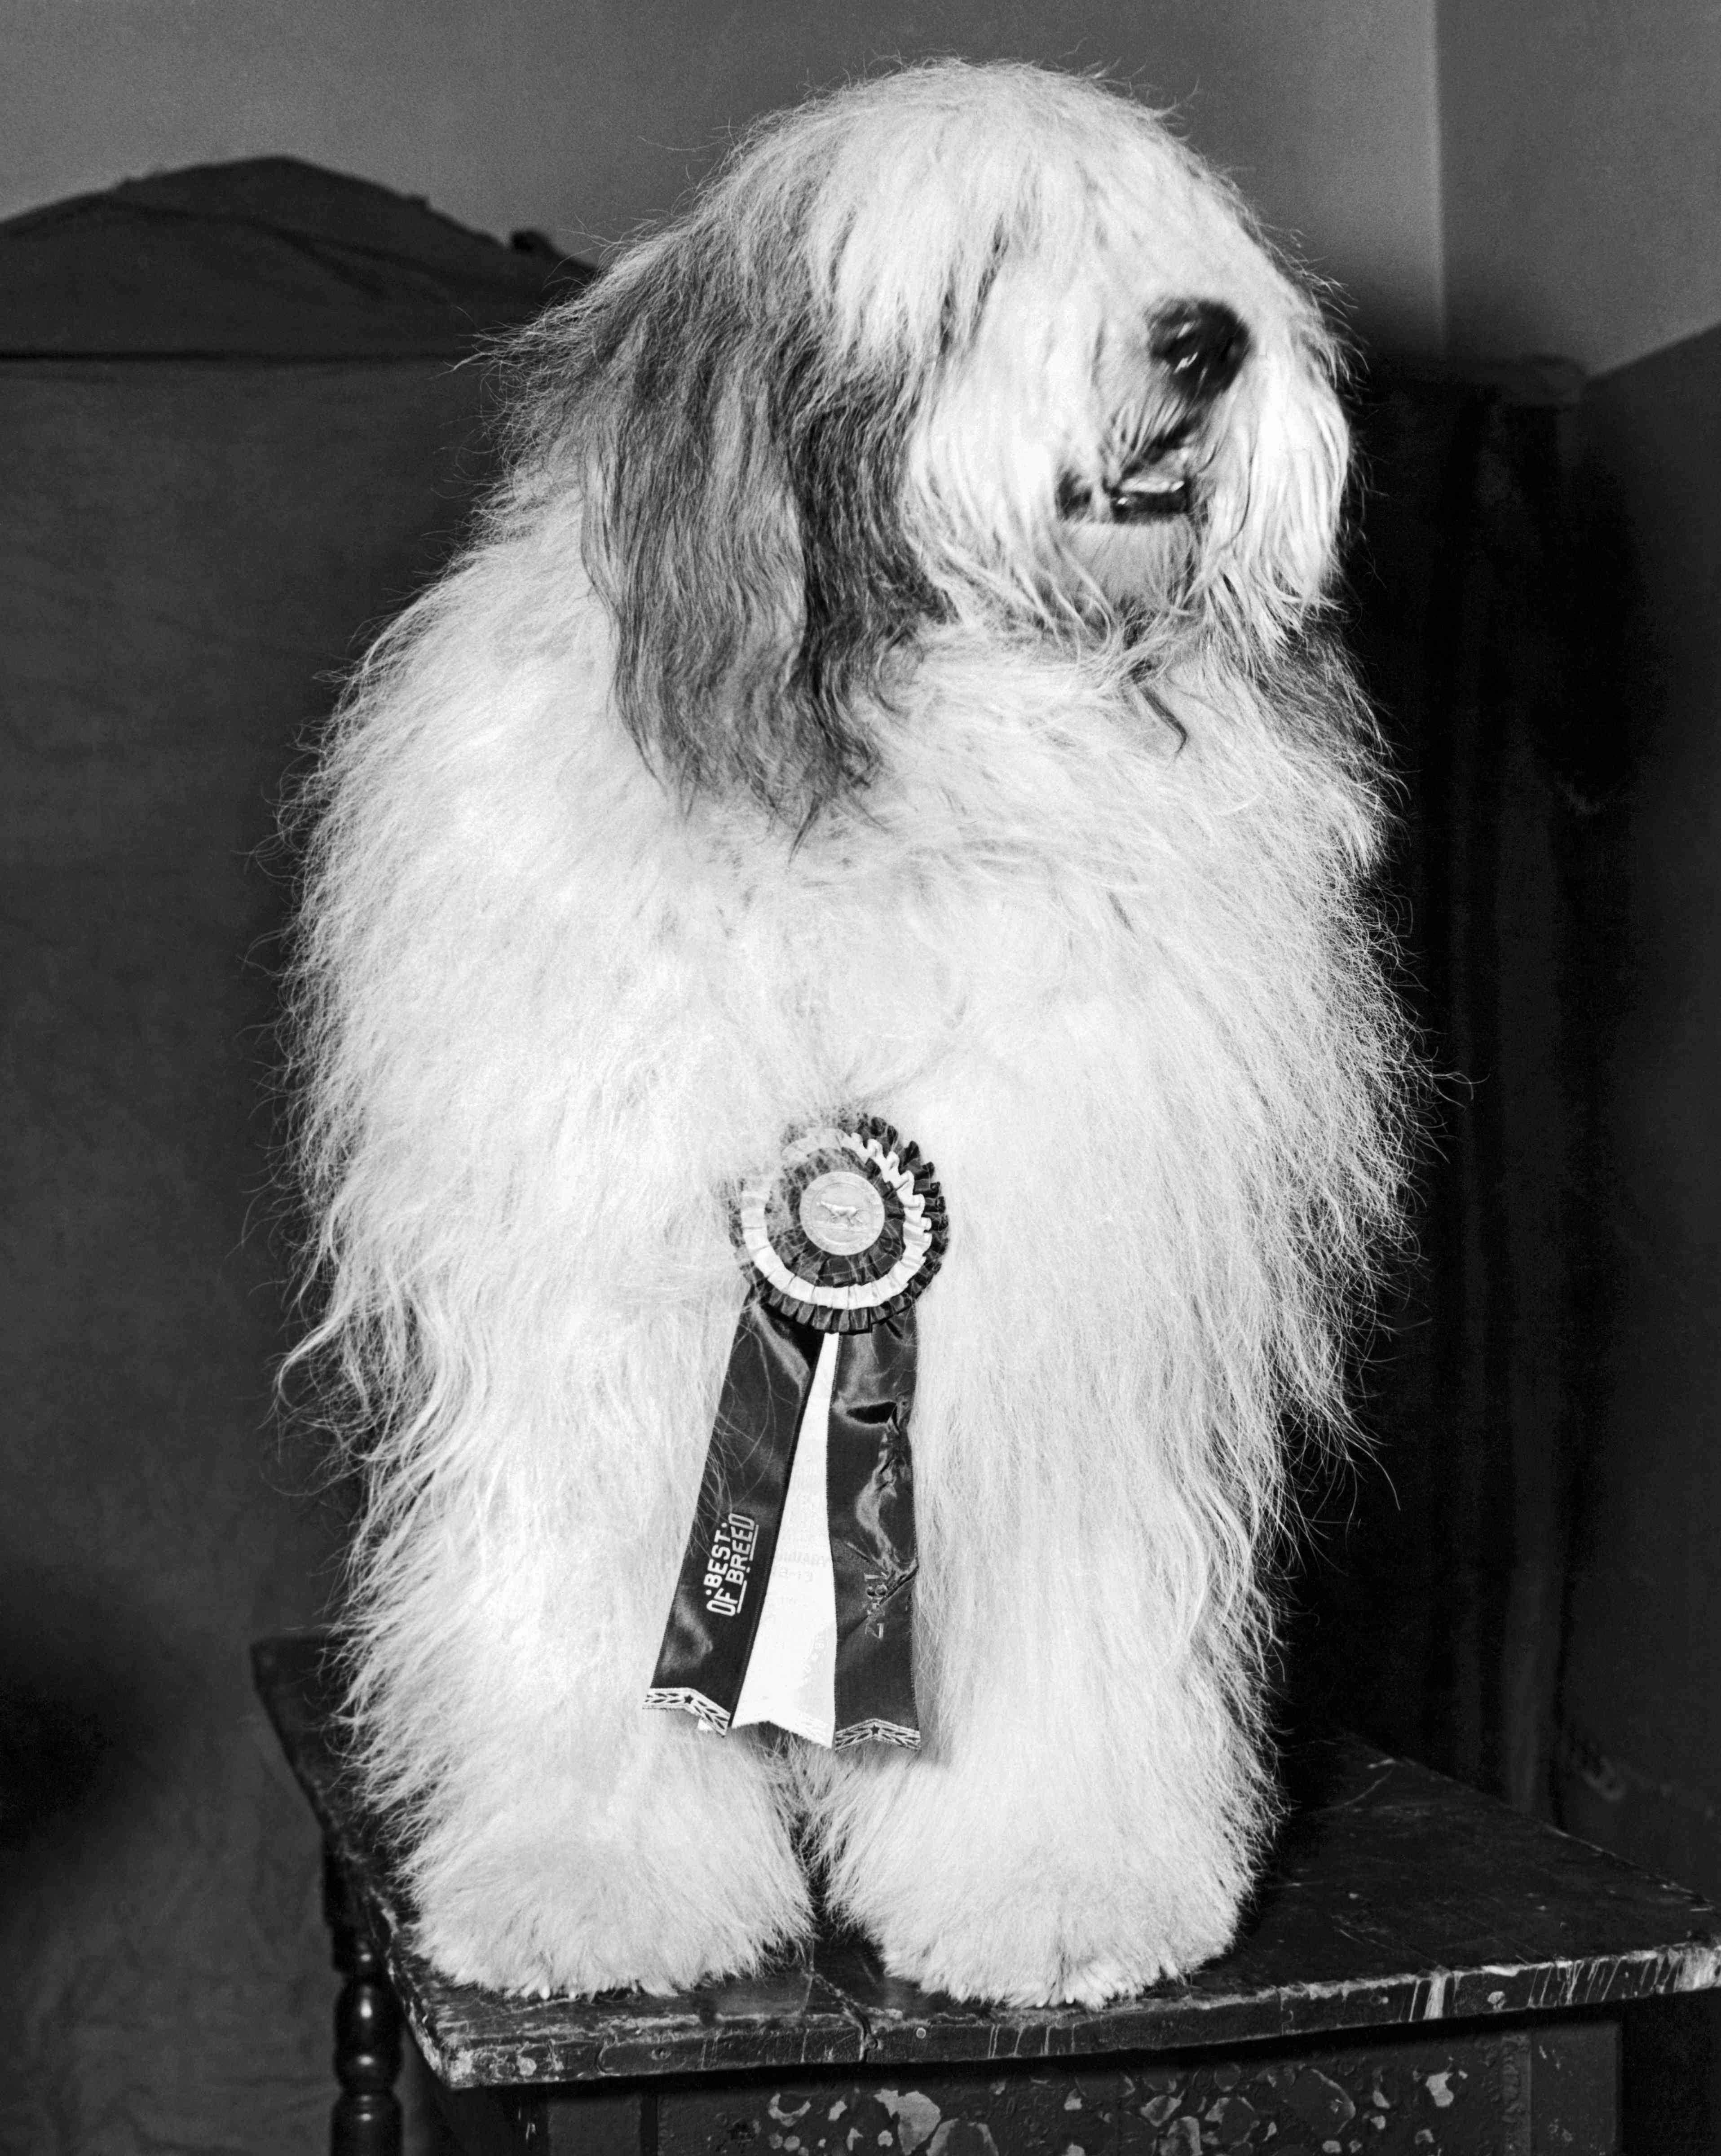 The winner of 'best of breed' in the Old English sheepdog class at the Westminster Kennel Club event in Madison Square Garden, New York, February 1947.